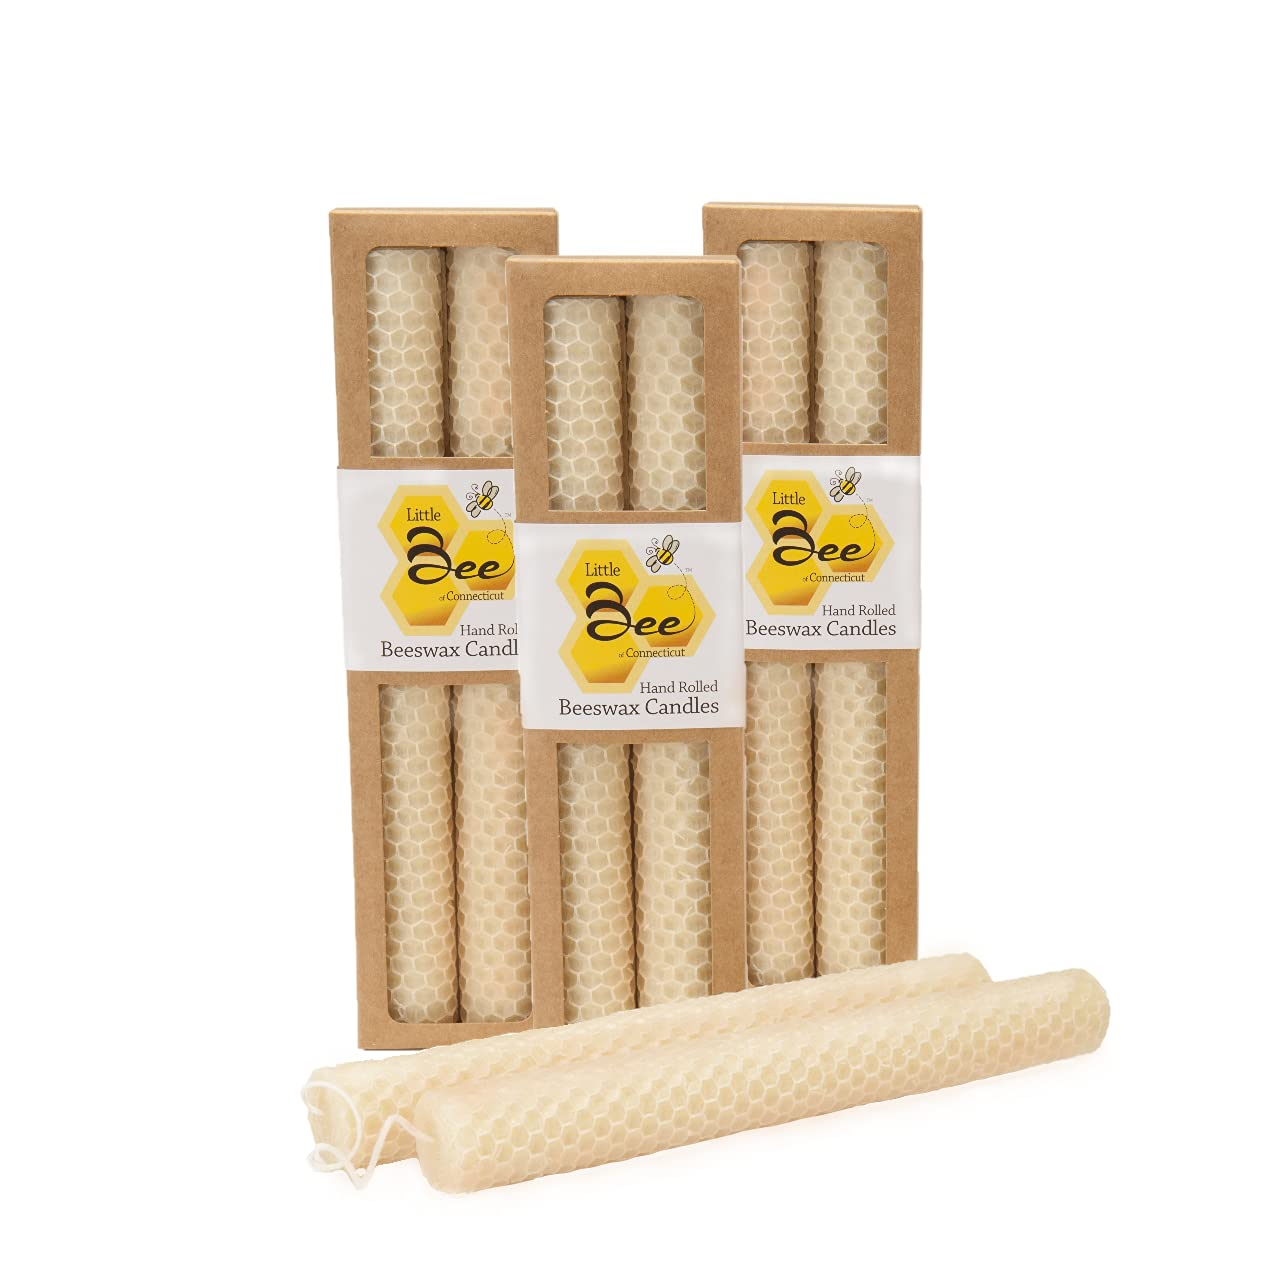 8 Inch Hand-Rolled Beeswax Taper Candles - of Bee Ranking TOP11 Little Connect Ranking TOP12